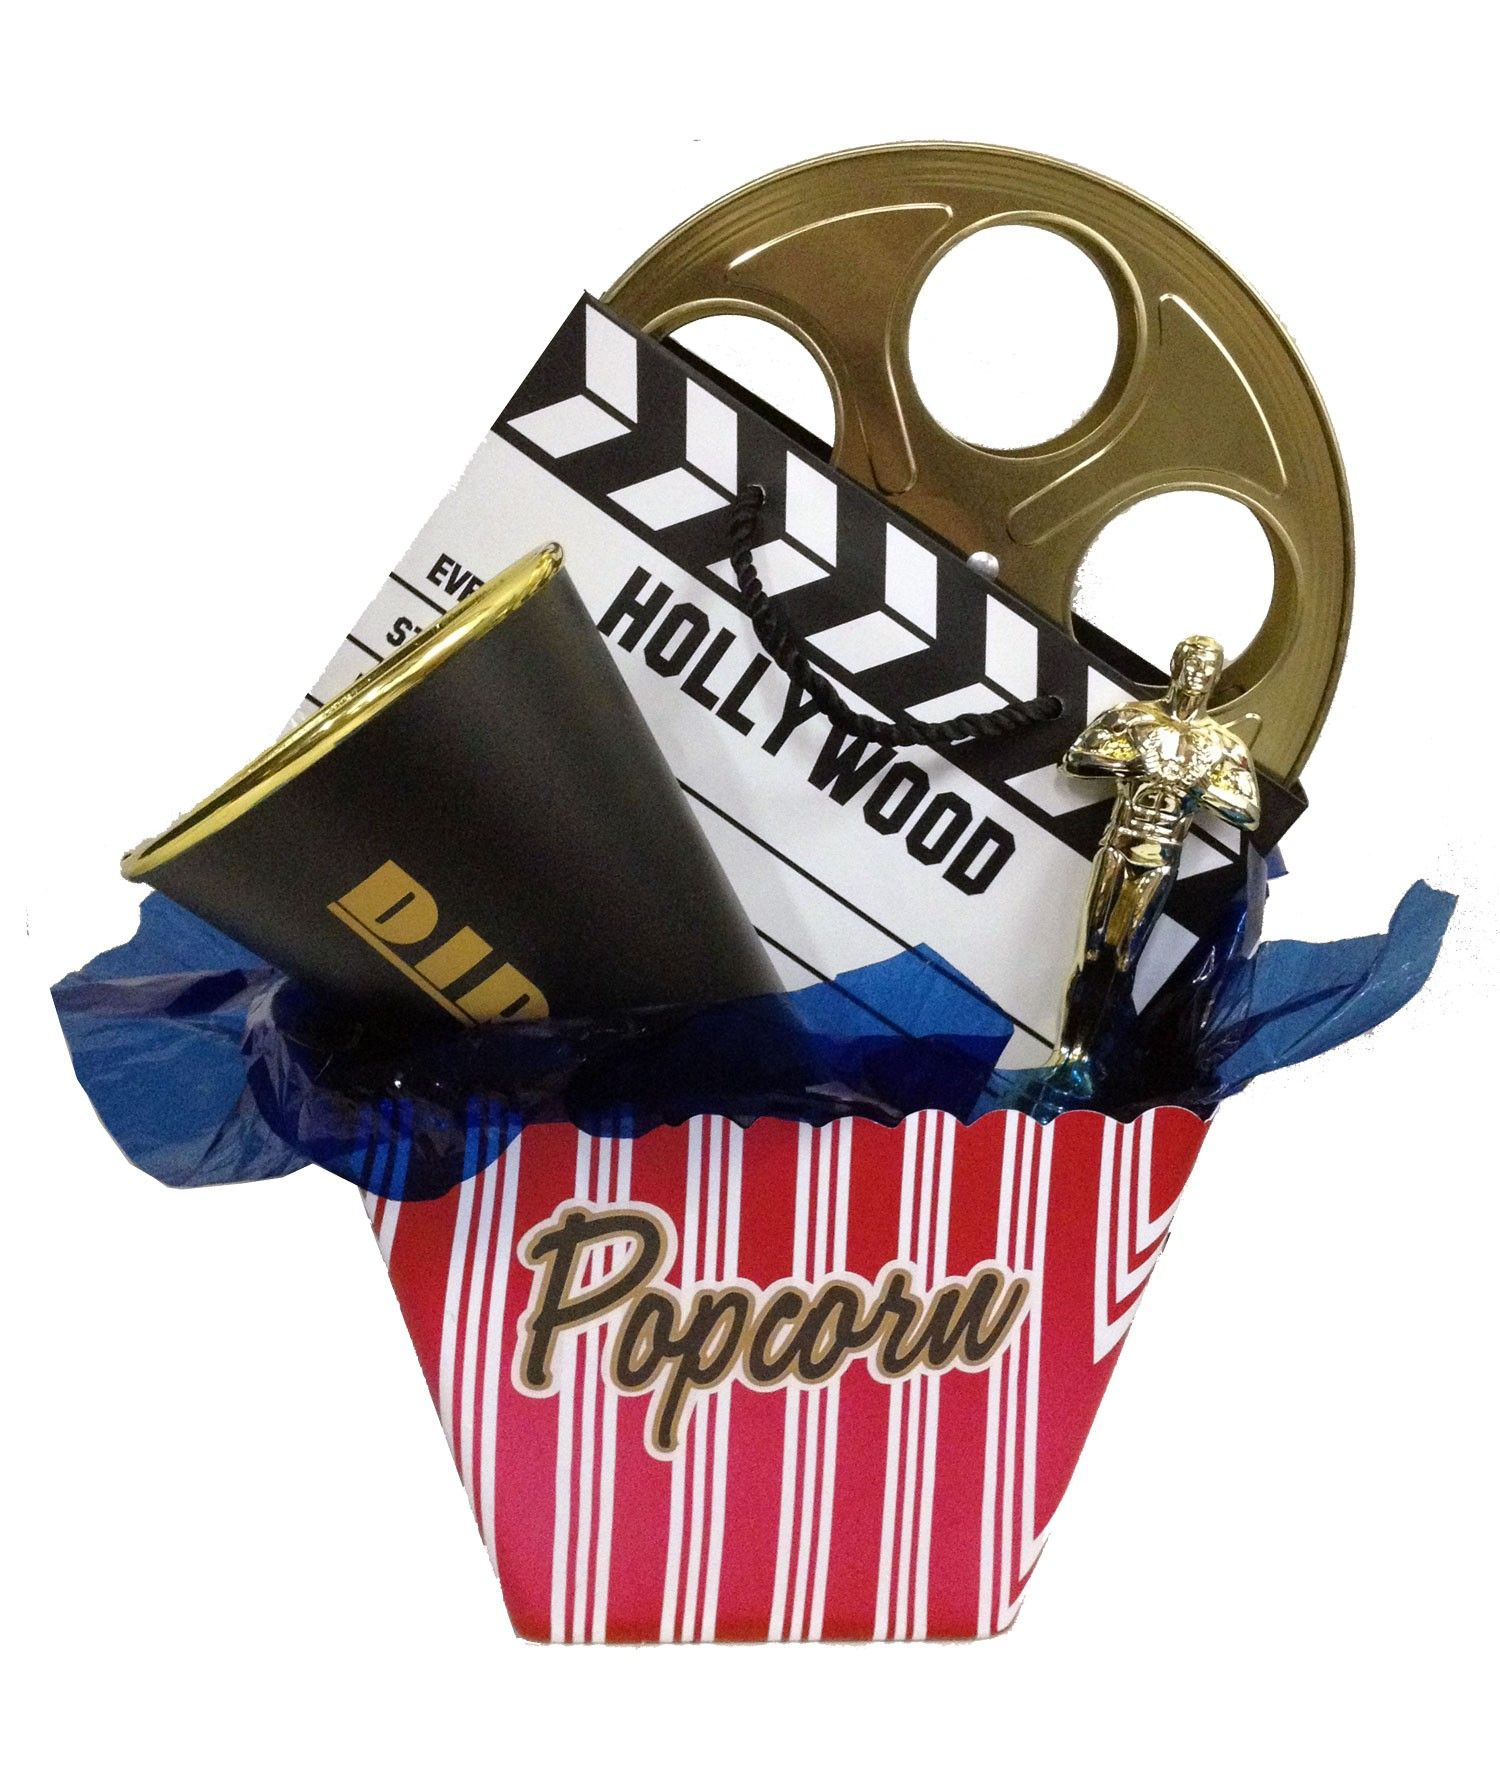 Skip to the beginning of the images gallery. Details. This Popcorn Gift Basket ...